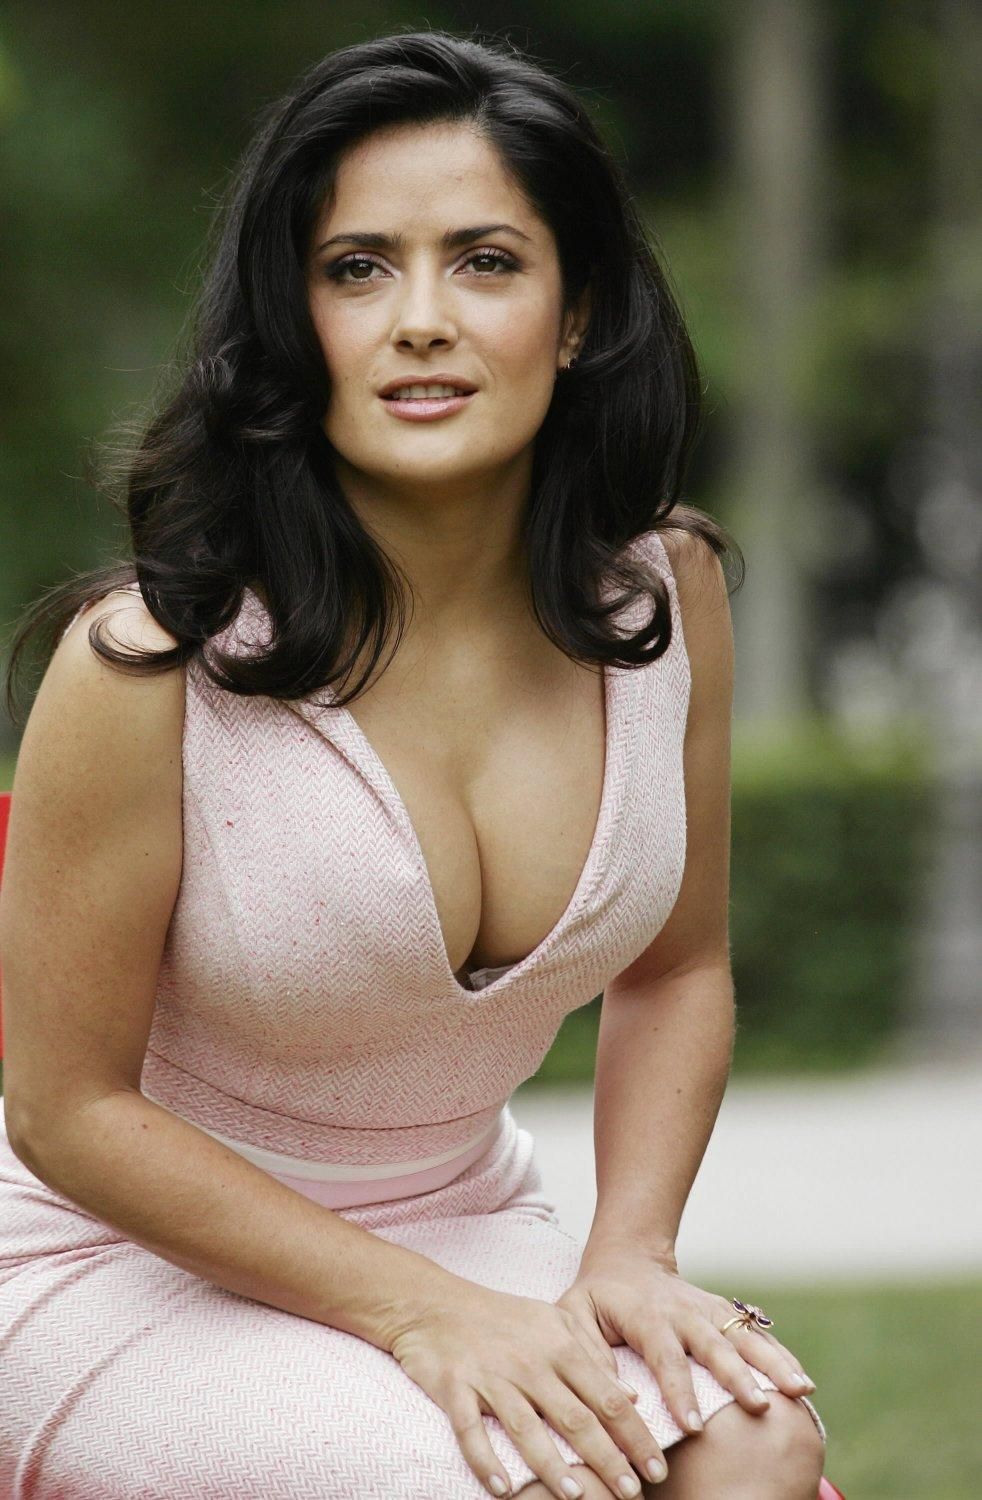 Actress salma hayek